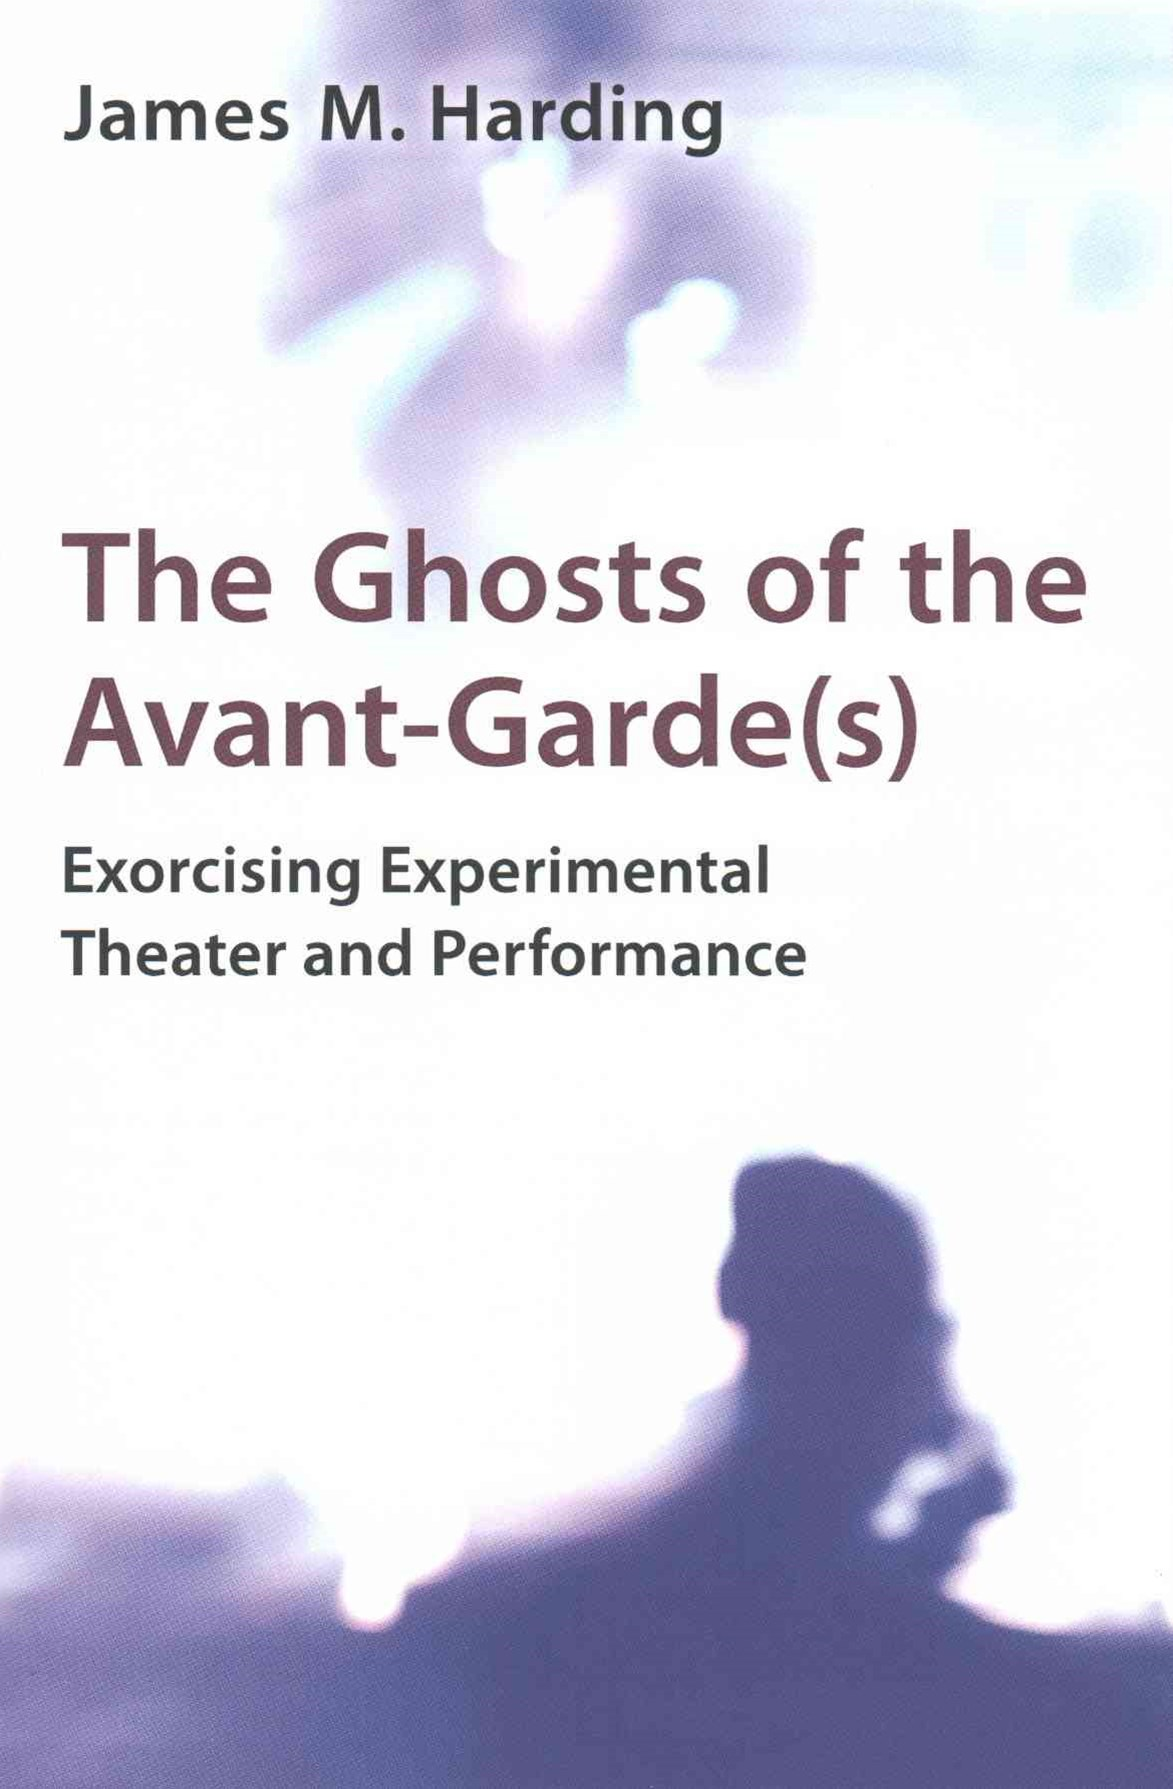 Ghosts of the Avant-Garde